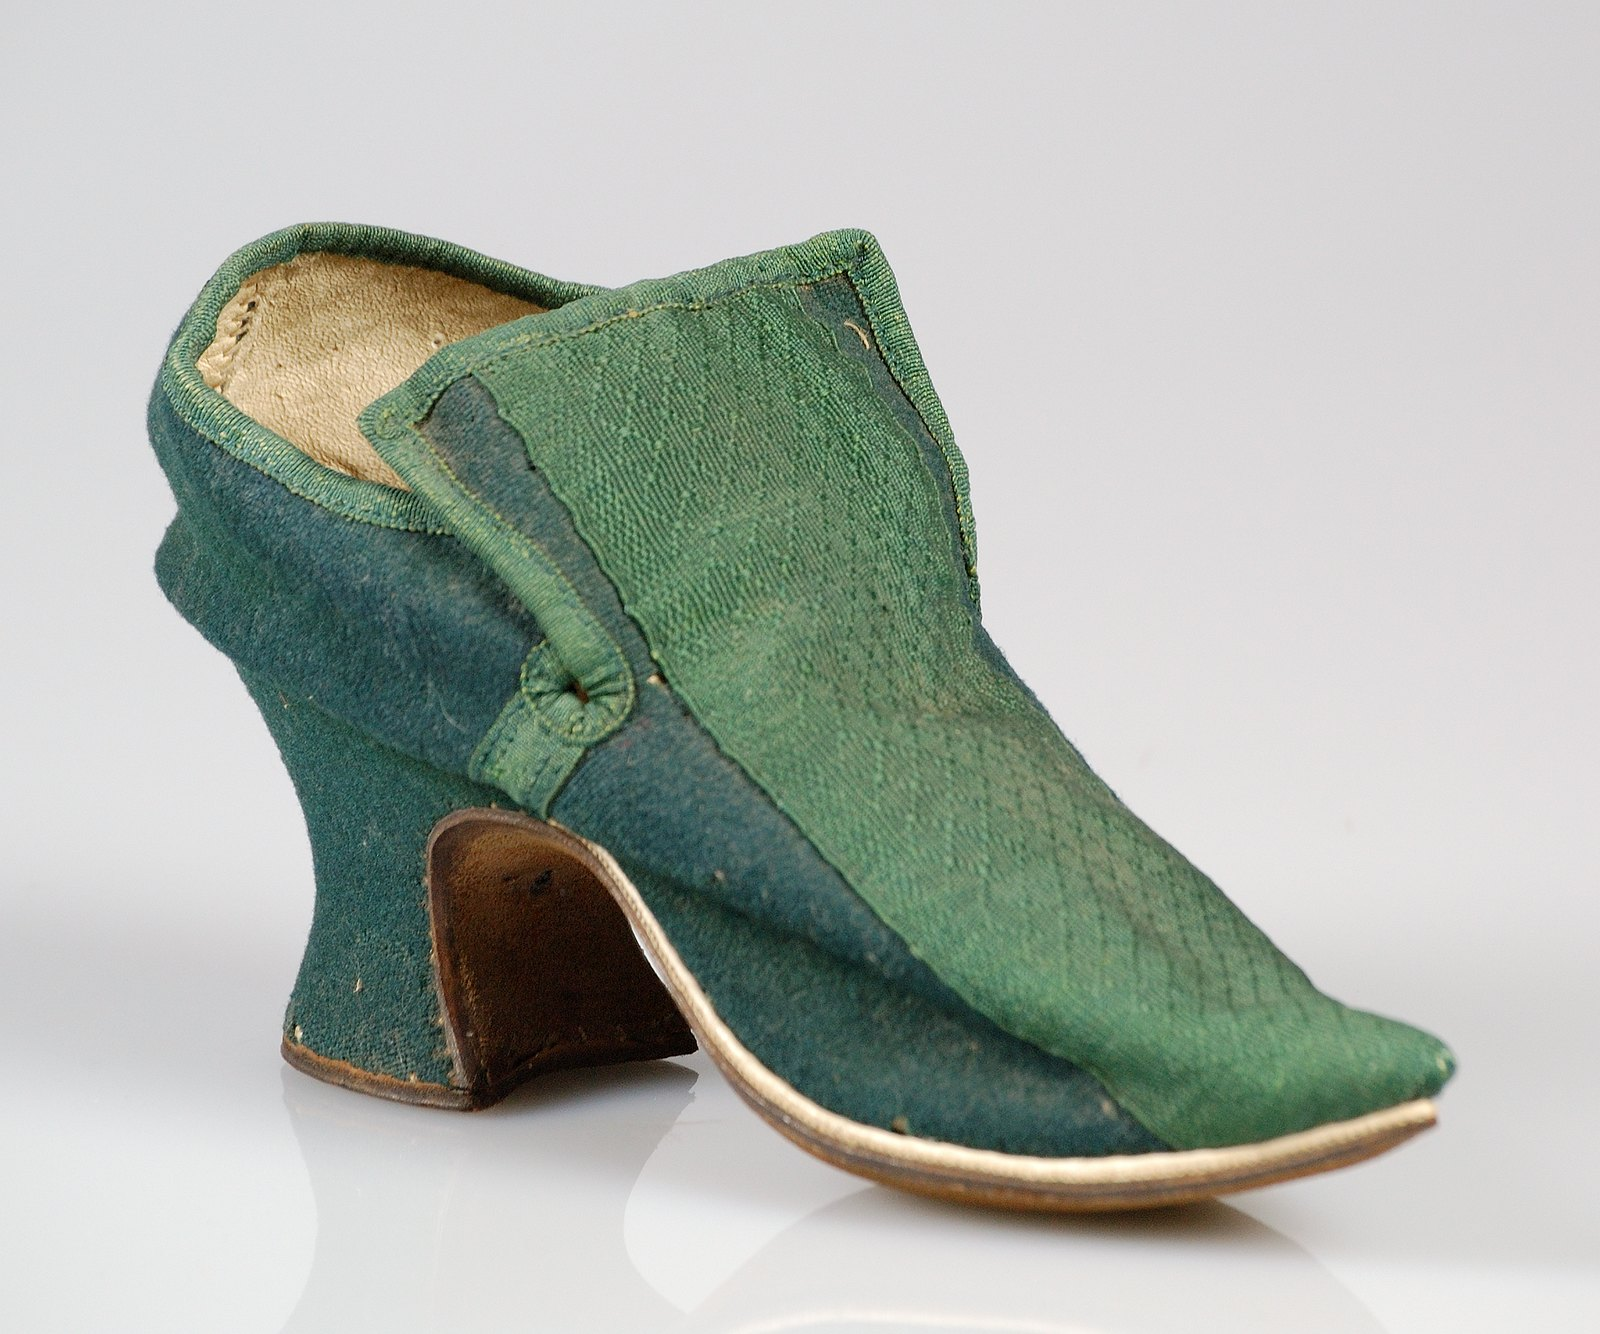 The Colorful Shoes Of The 18th Century